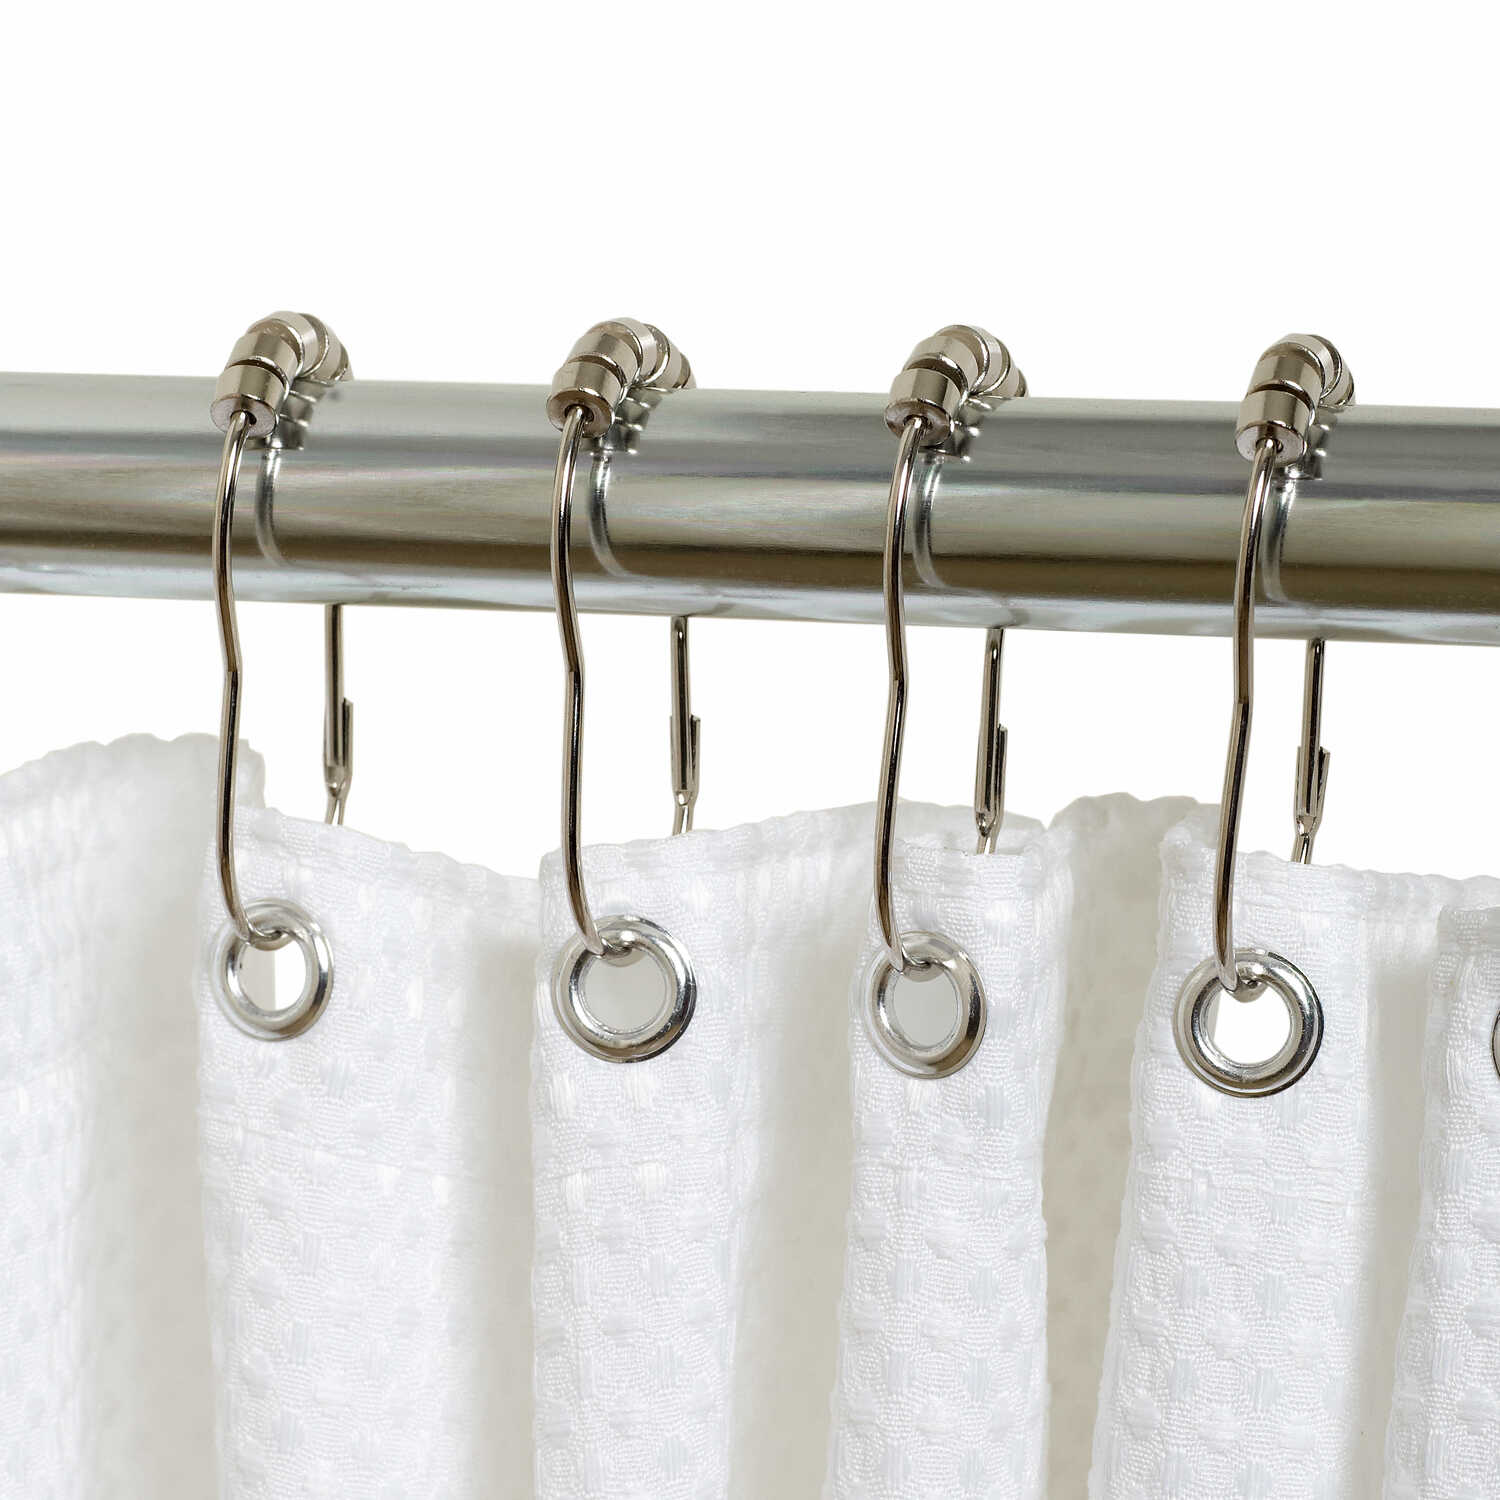 Zenna Home  Chrome  Roller  Shower Curtain Rings  12 pk Metal